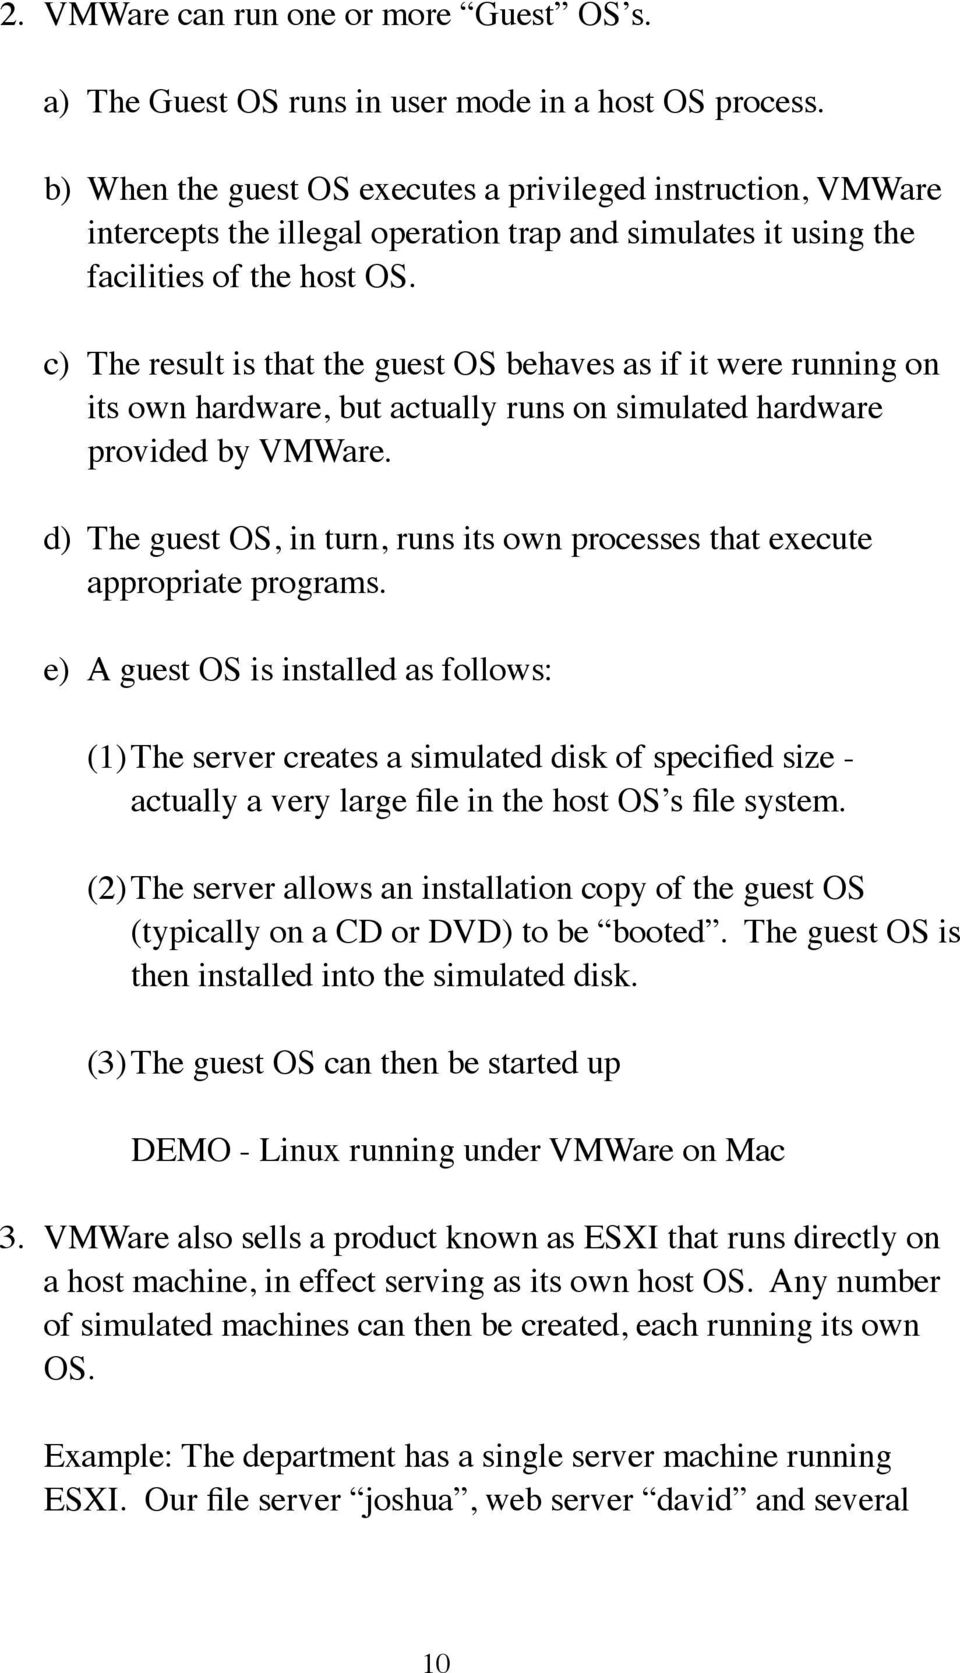 c) The result is that the guest OS behaves as if it were running on its own hardware, but actually runs on simulated hardware provided by VMWare.